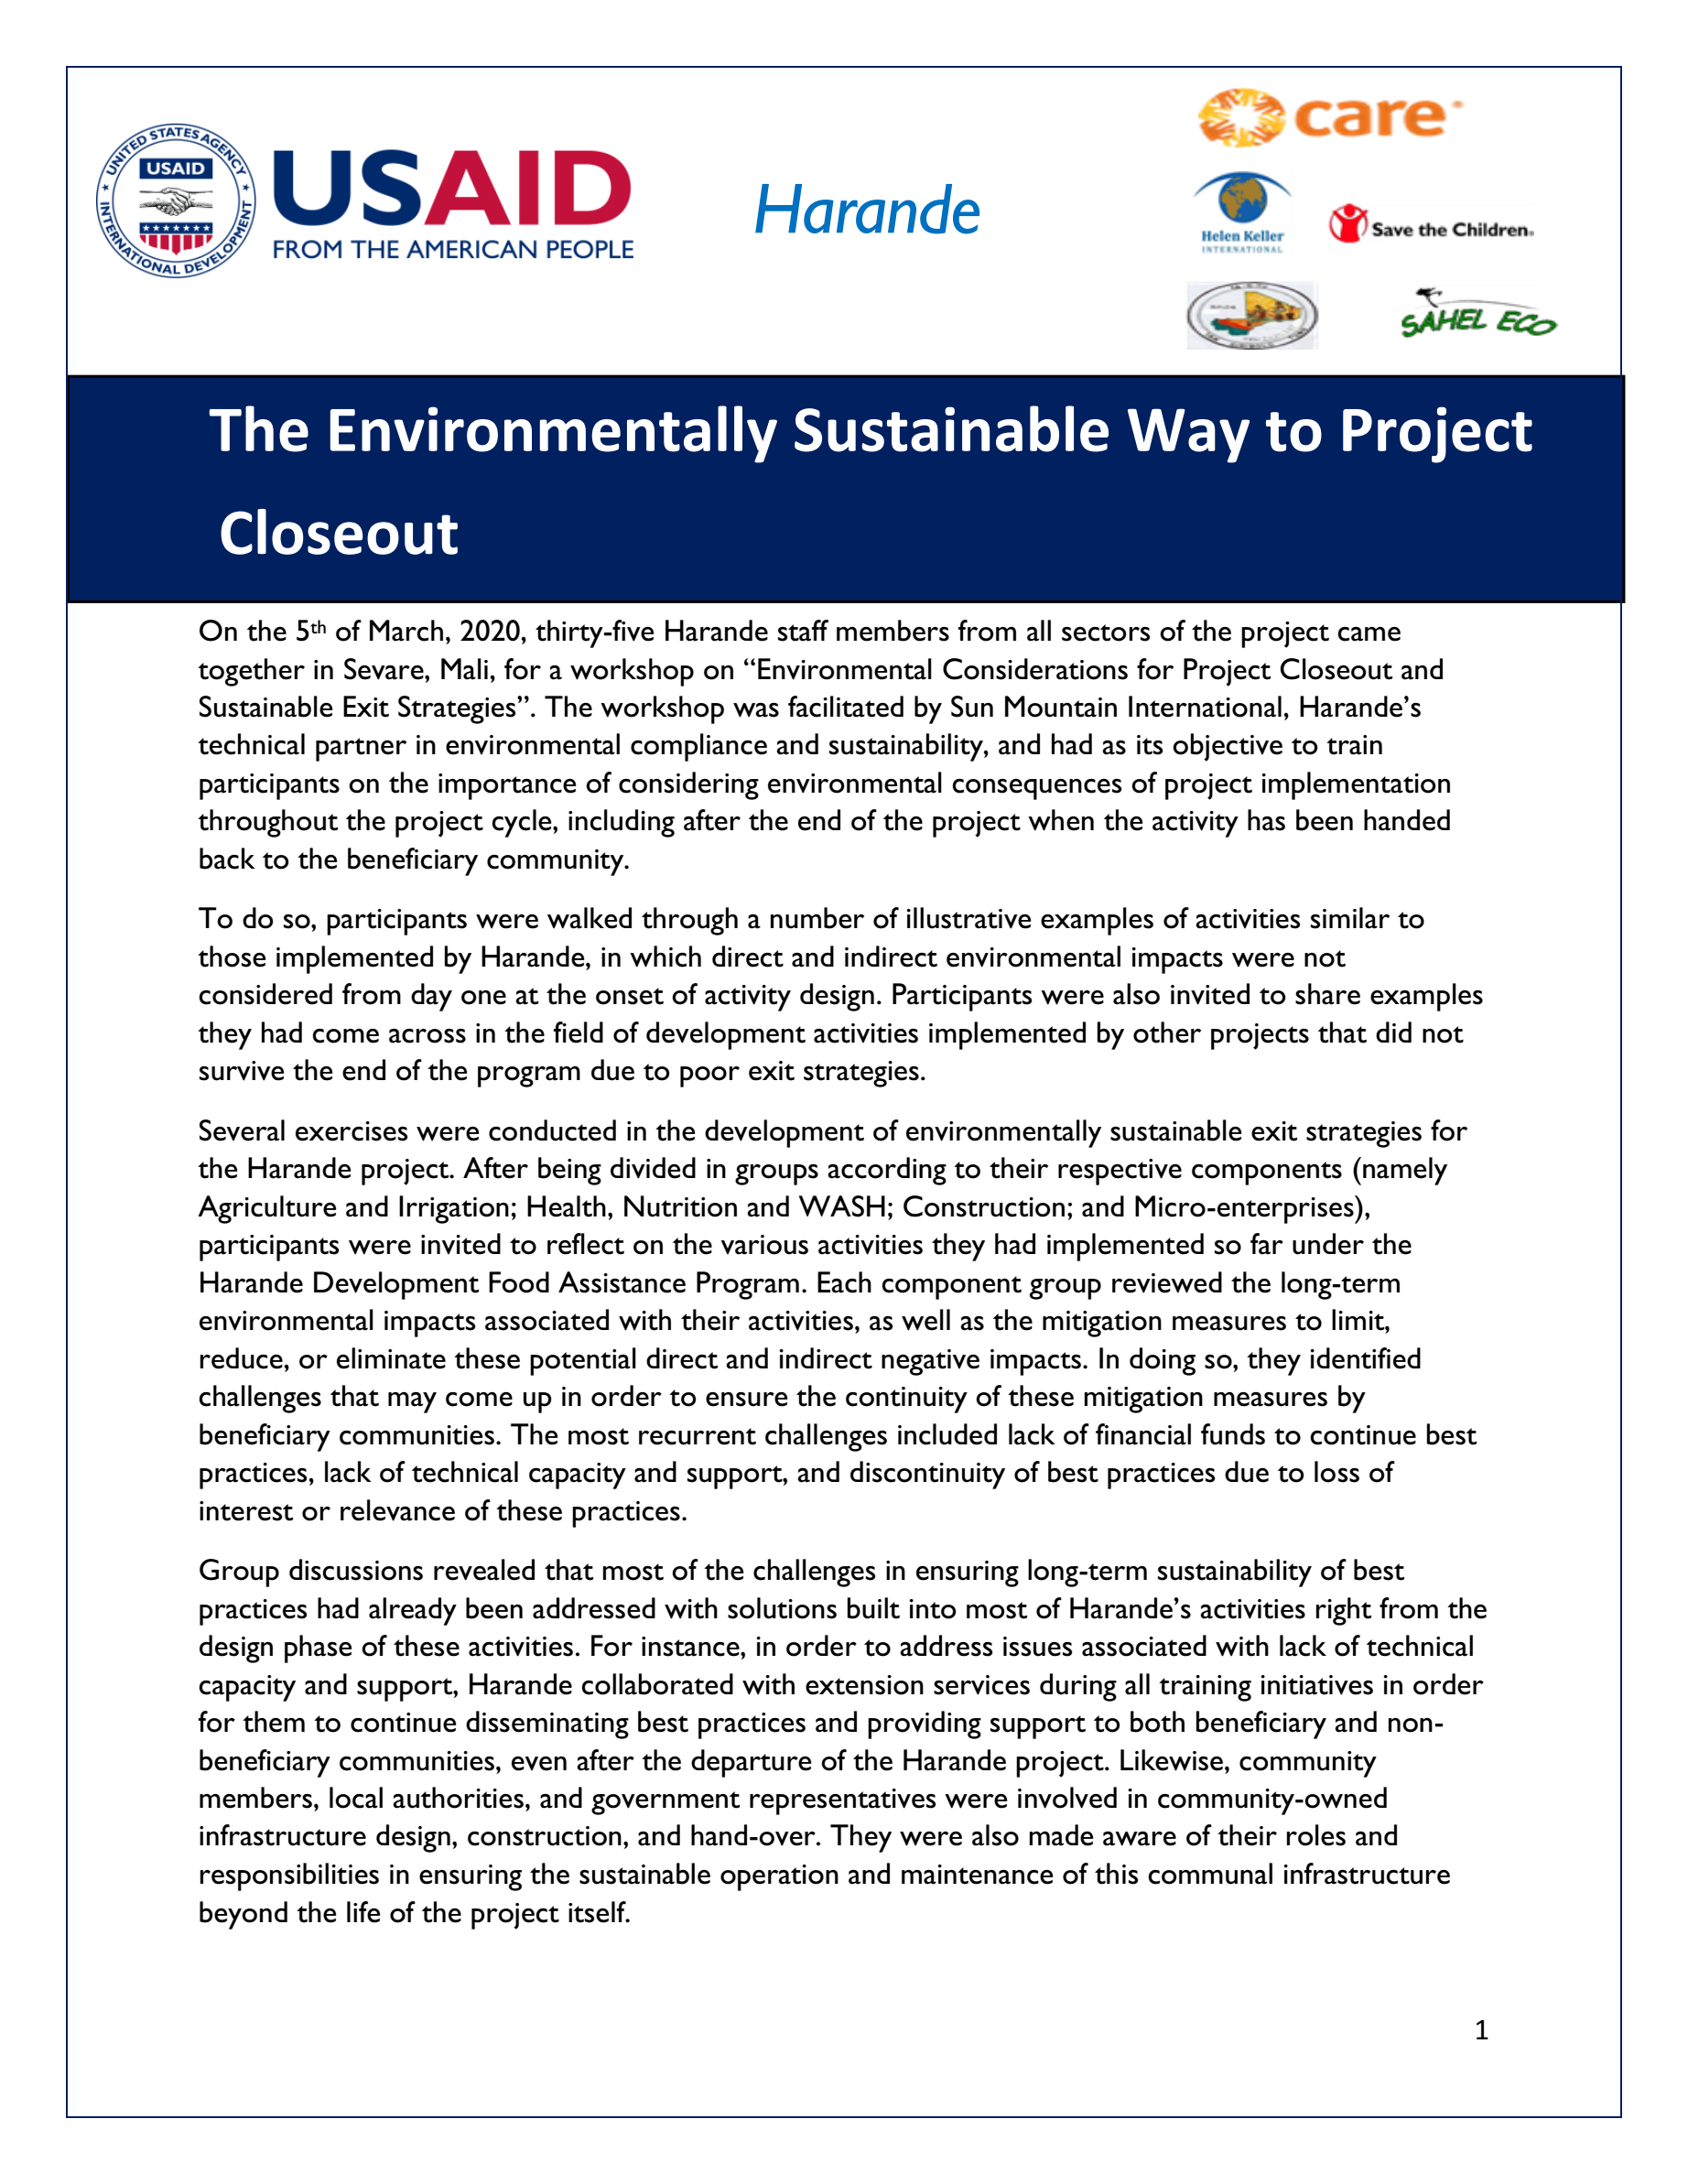 The Environmentally Sustainable Way to Project Closeout - Harande